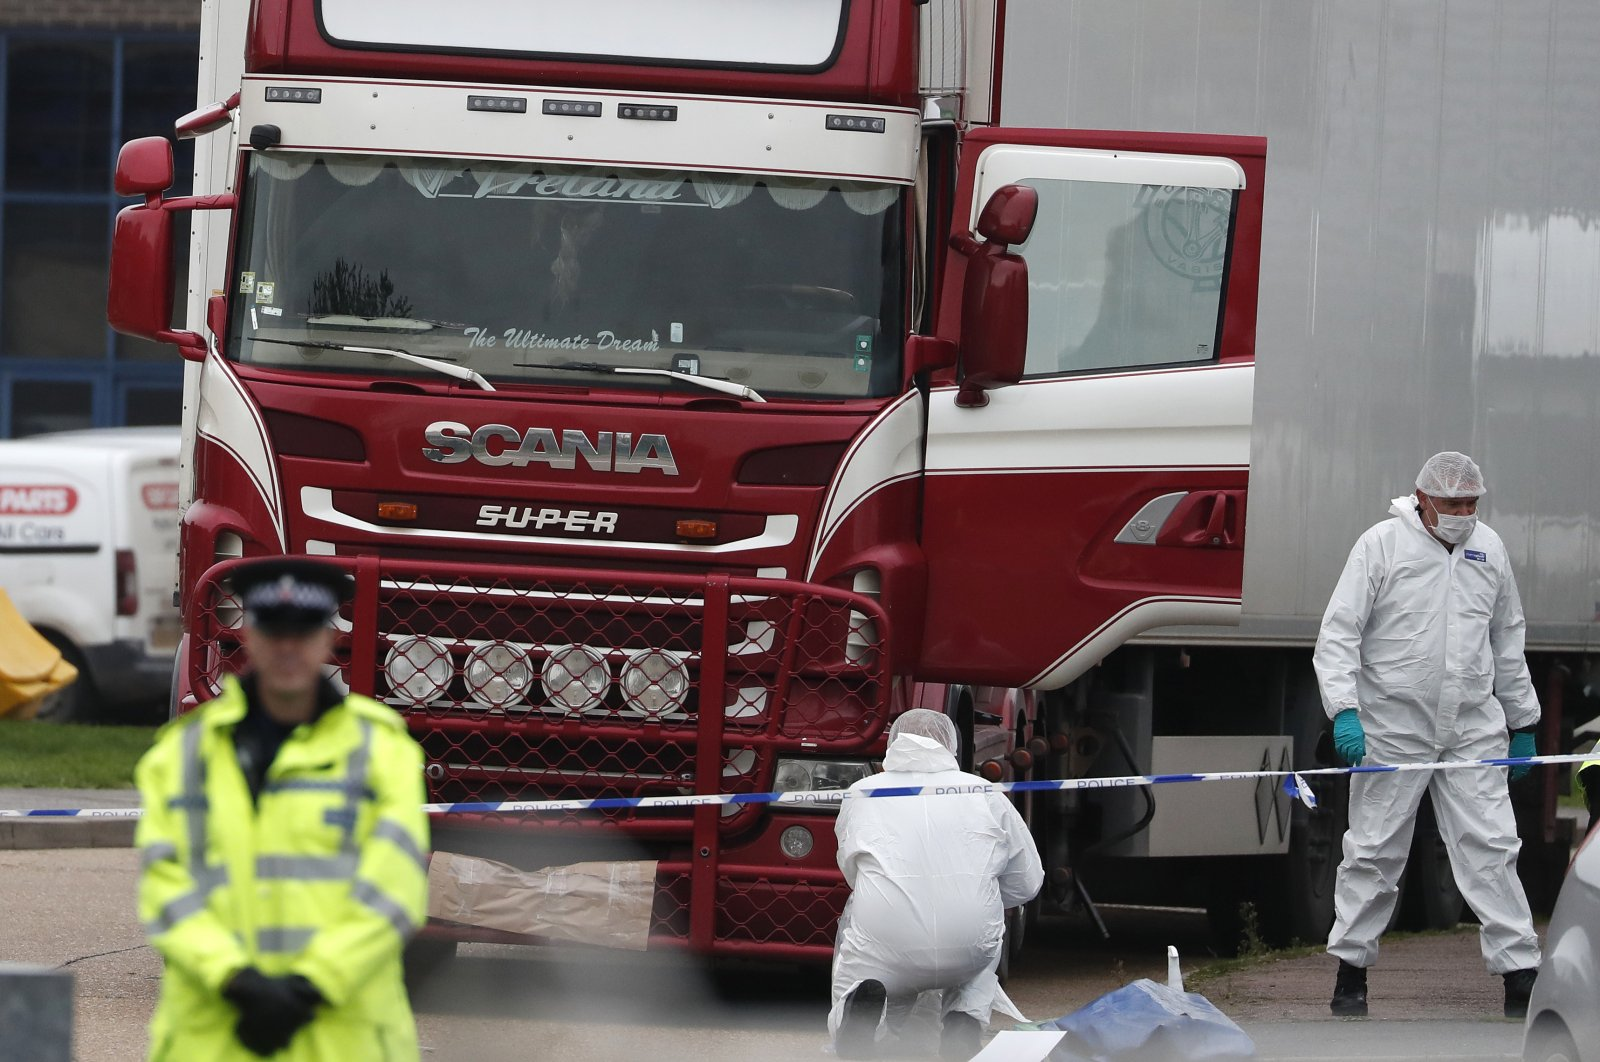 Forensic police officers attend the crime scene where the 39 dead bodies were found in a truck, in Grays, South England, Oct. 23, 2019. (AP Photo)